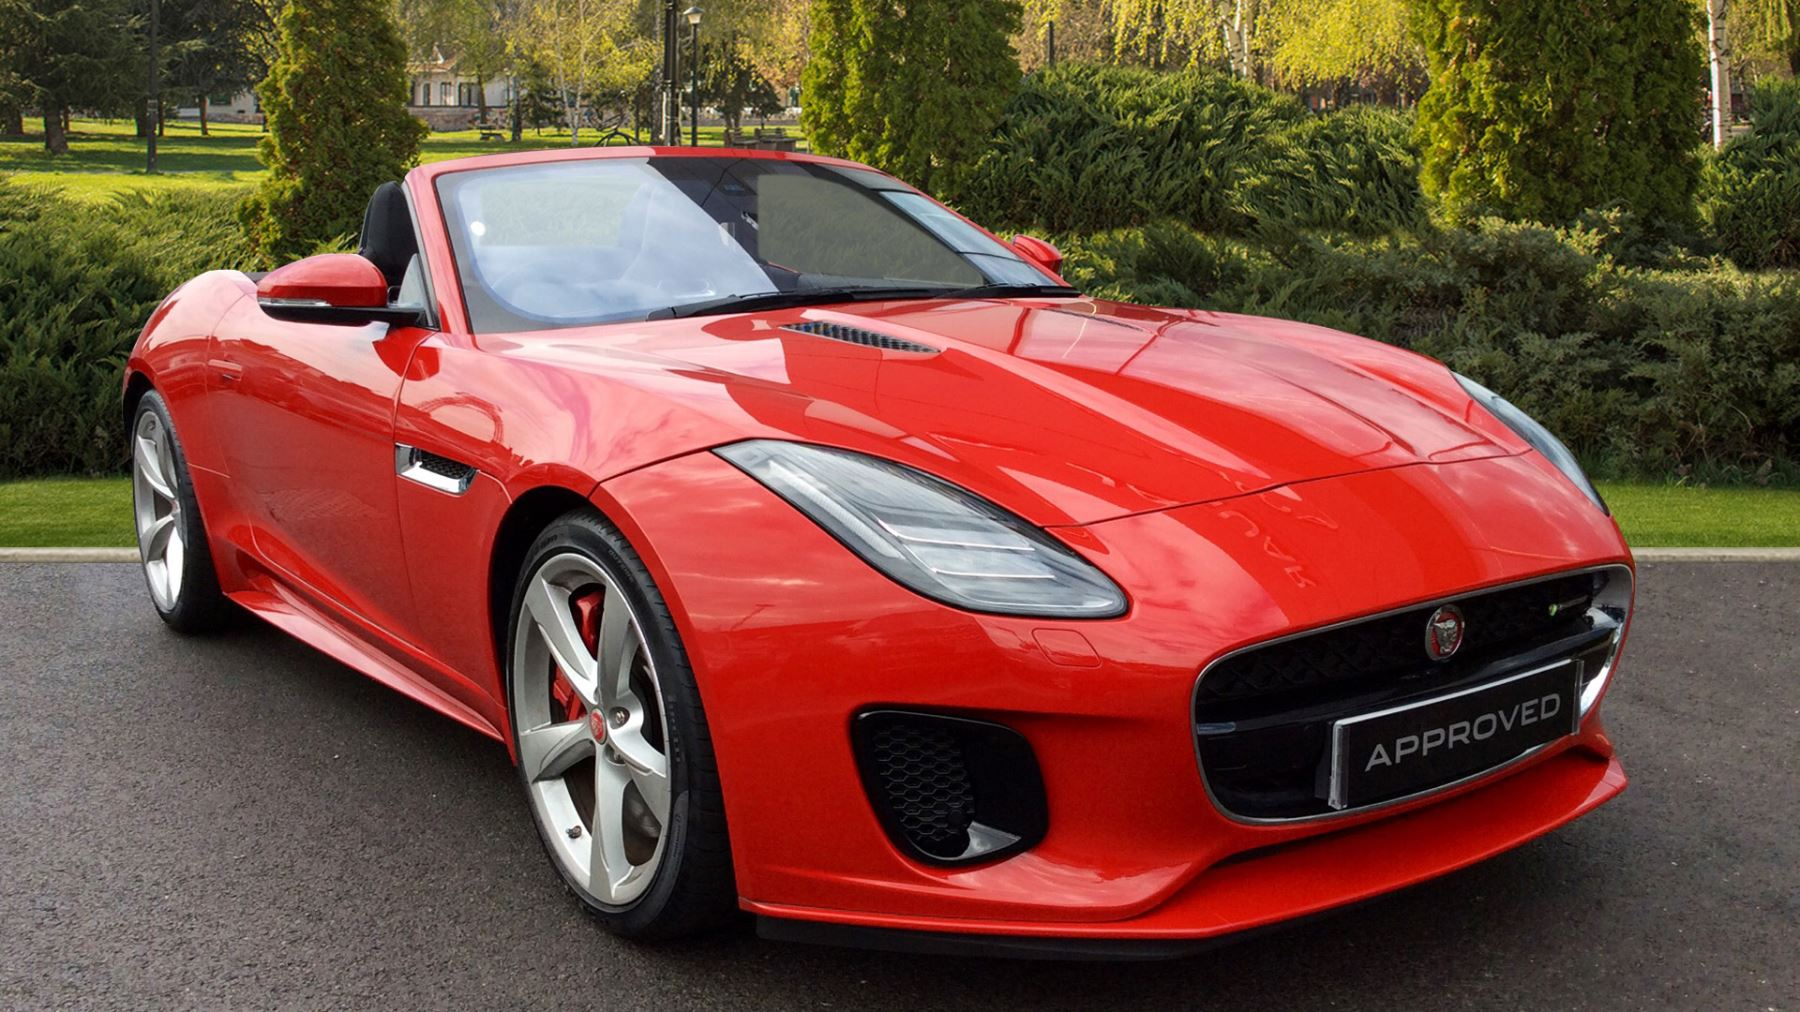 Jaguar F-TYPE 3.0 [380] Supercharged V6 R-Dynamic 2dr image 1